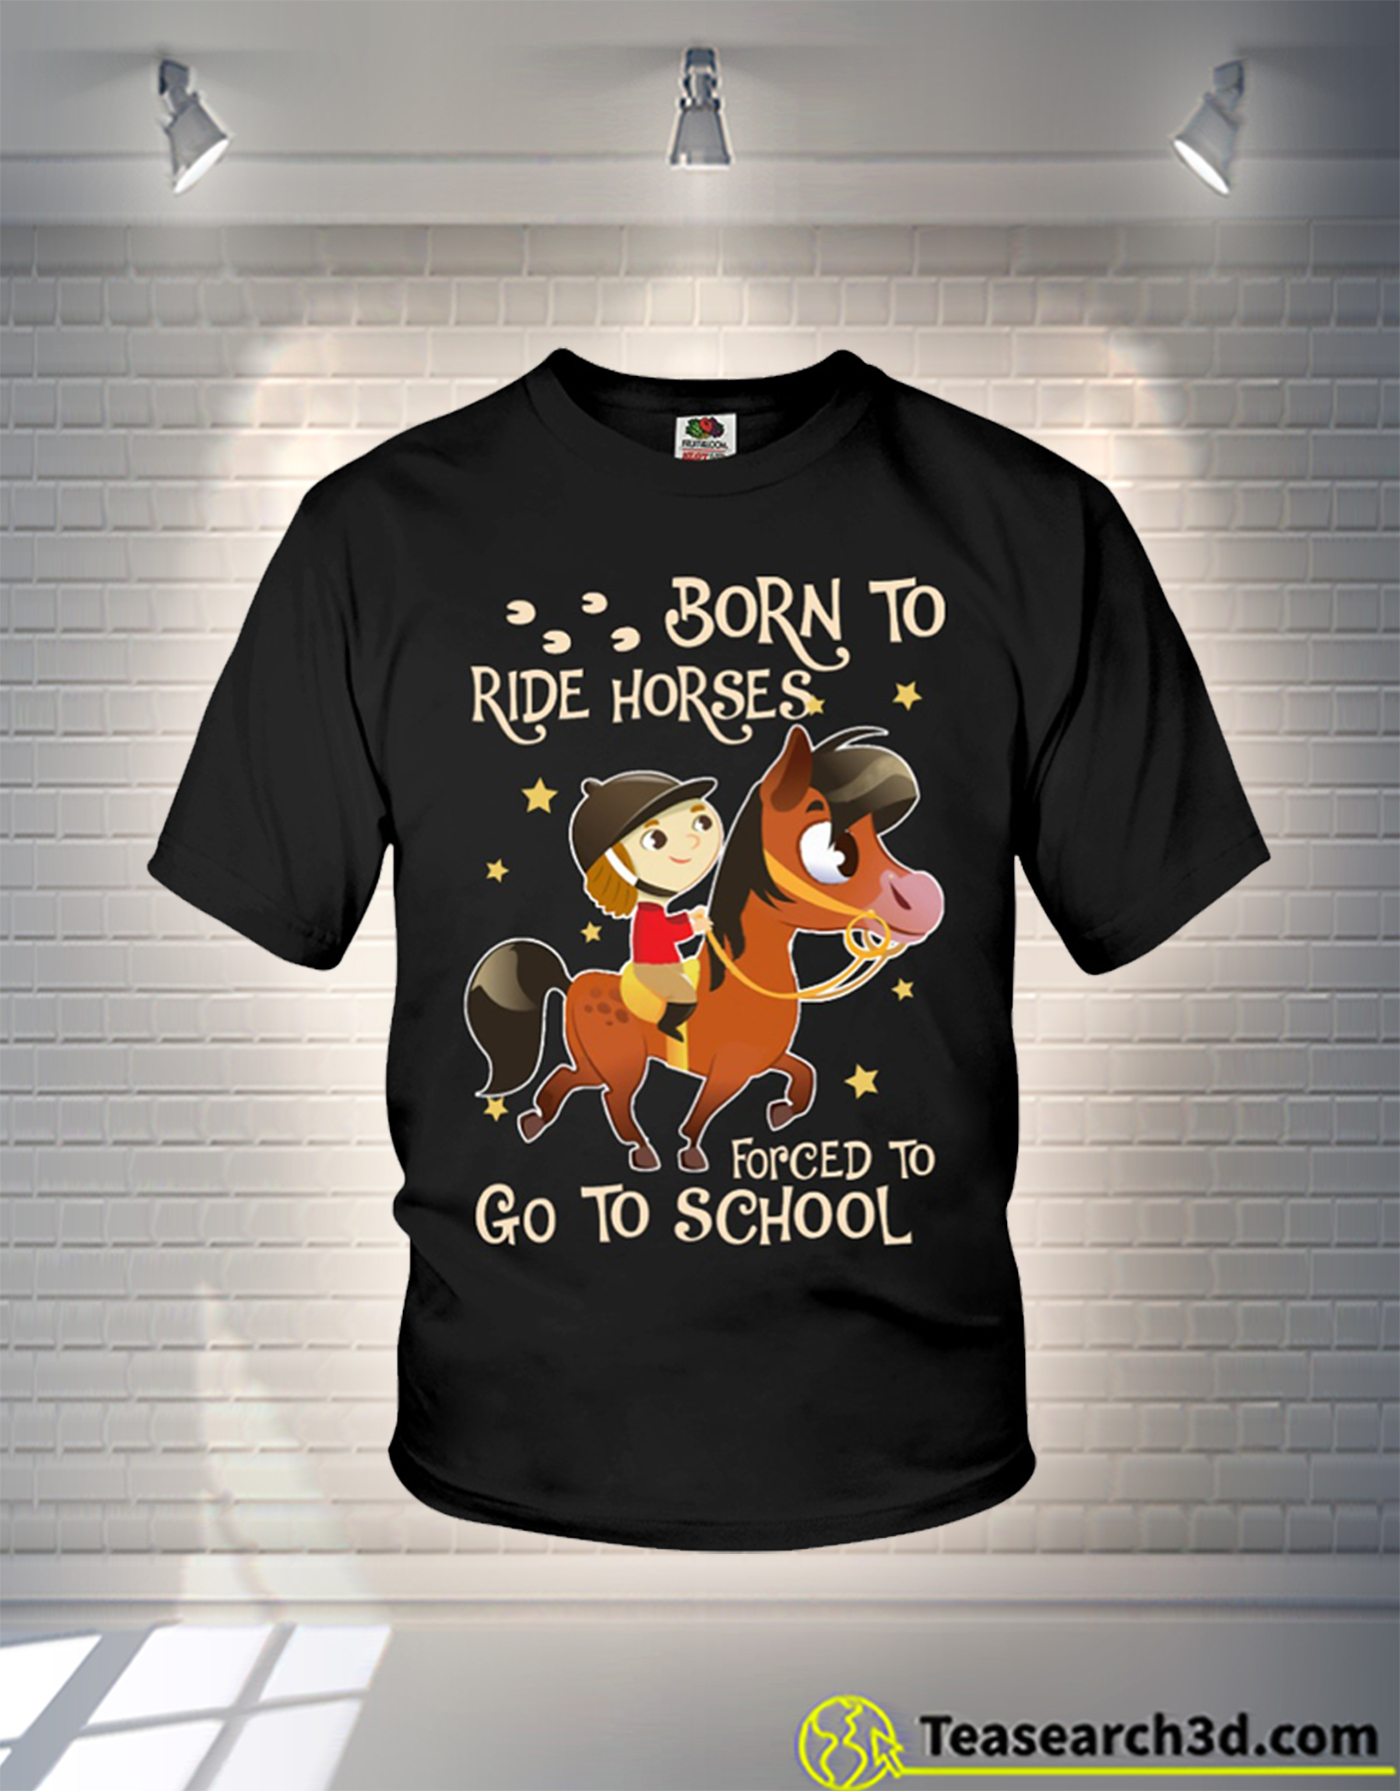 Born to ride horses forced to go to school t-shirt